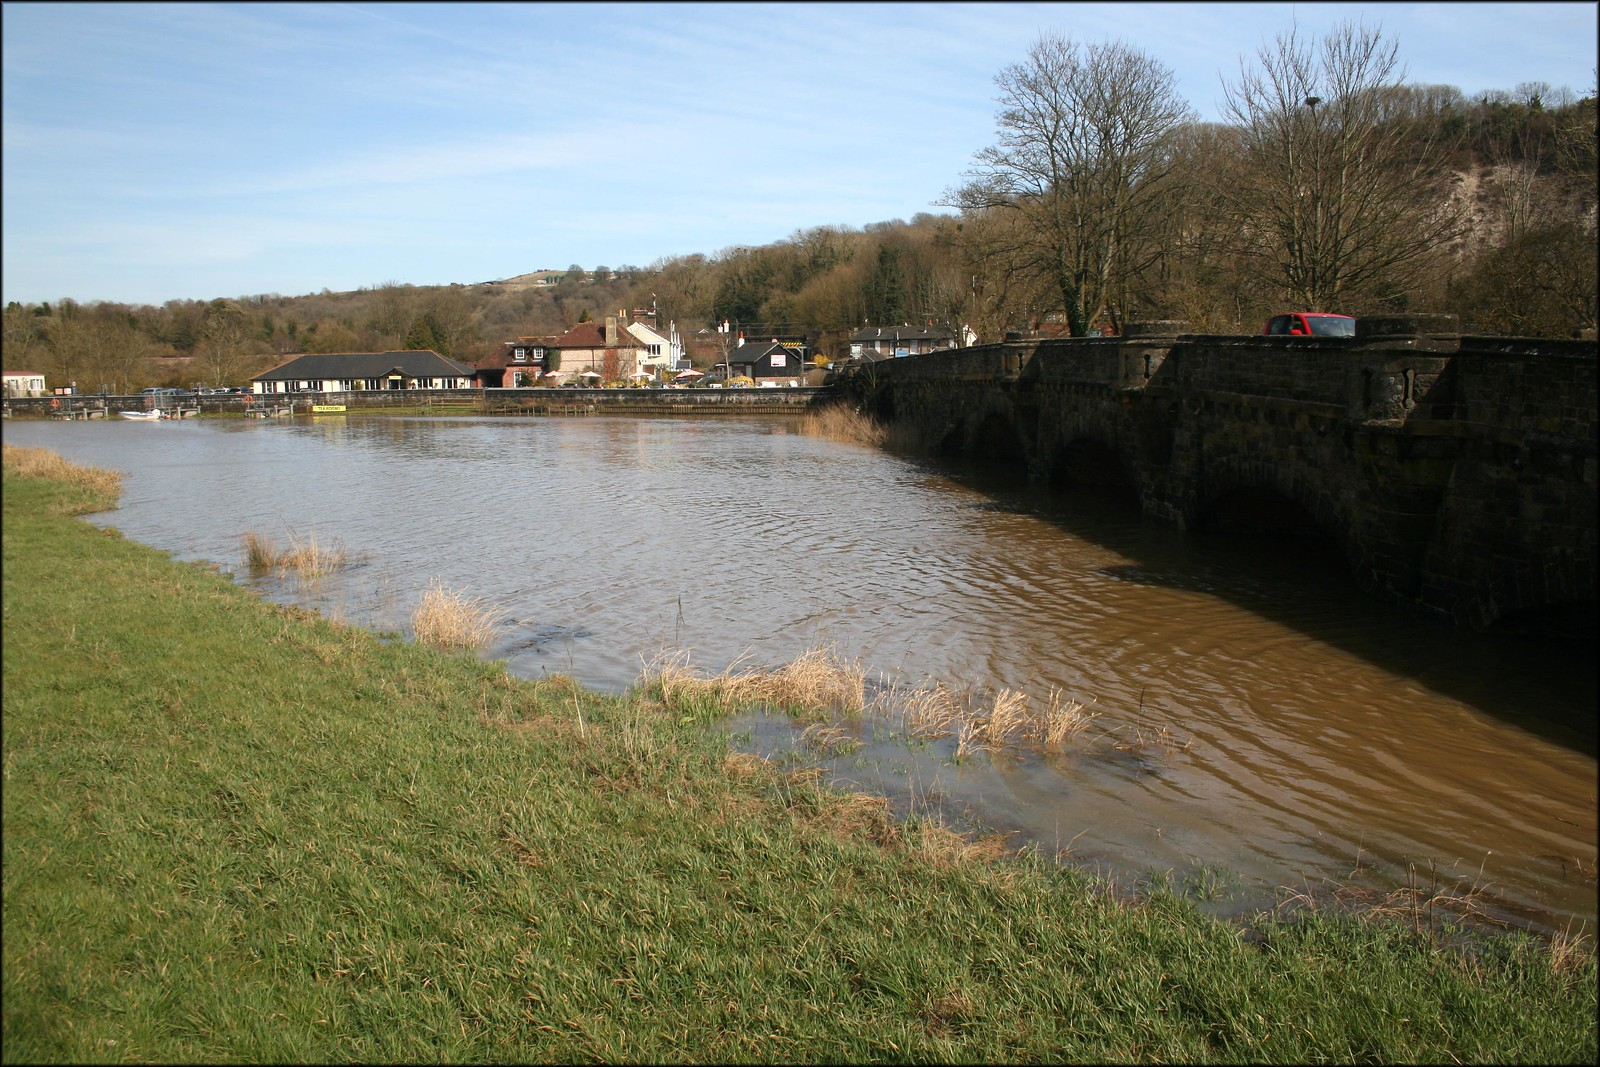 The River Arun at Amberley Station